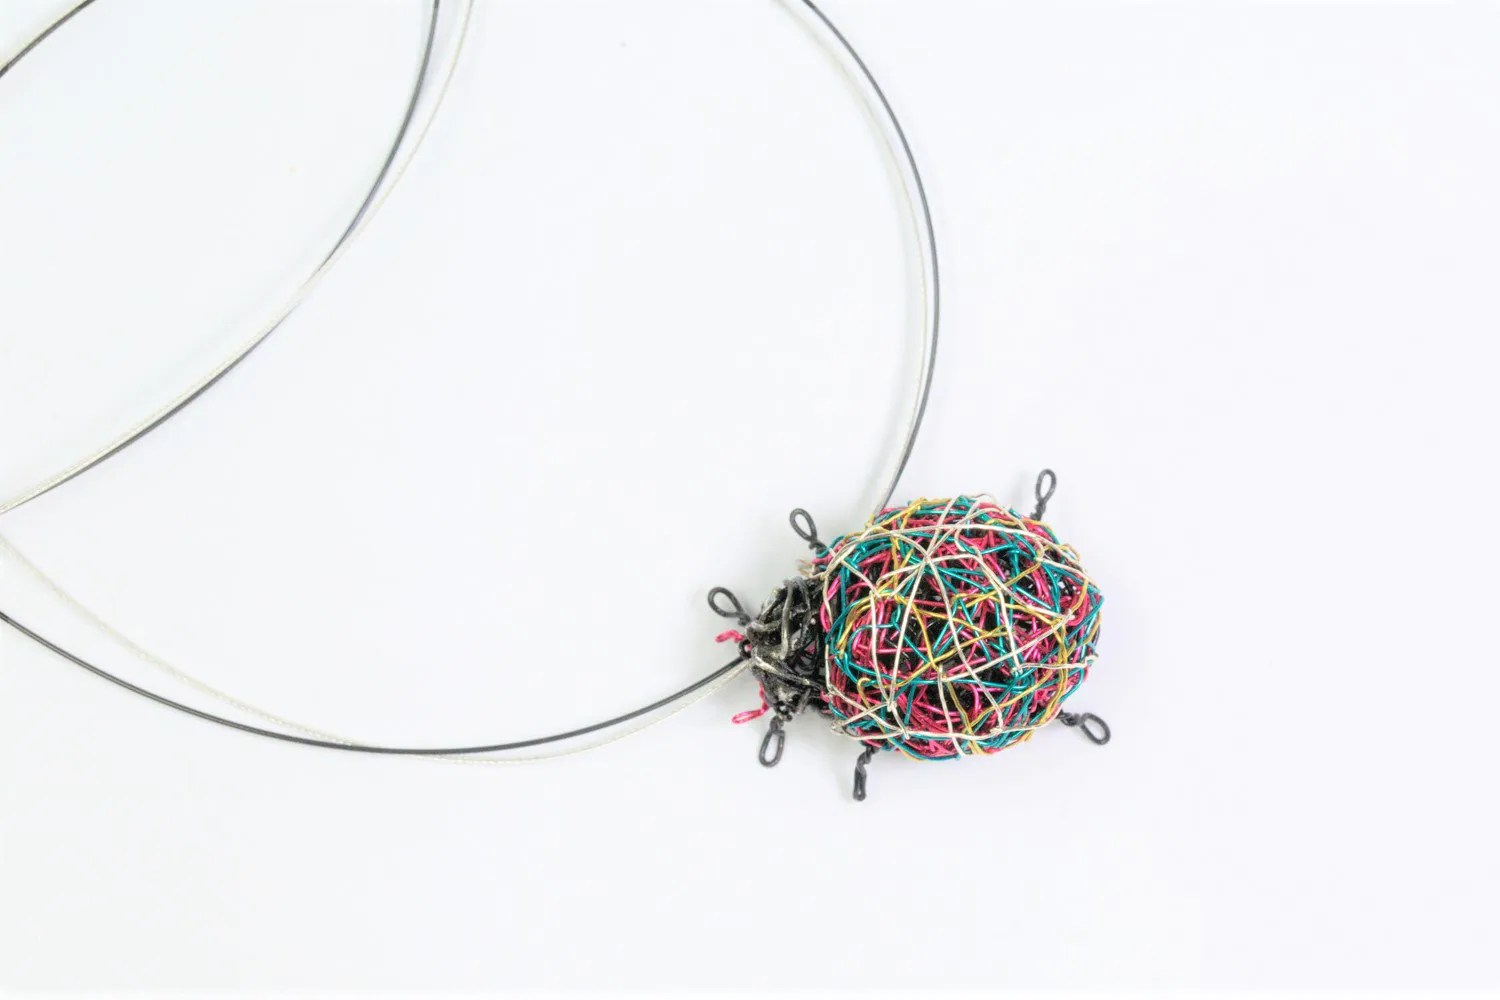 Ladybug Necklace Ladybird Insect Art Jewelry Cute Wire